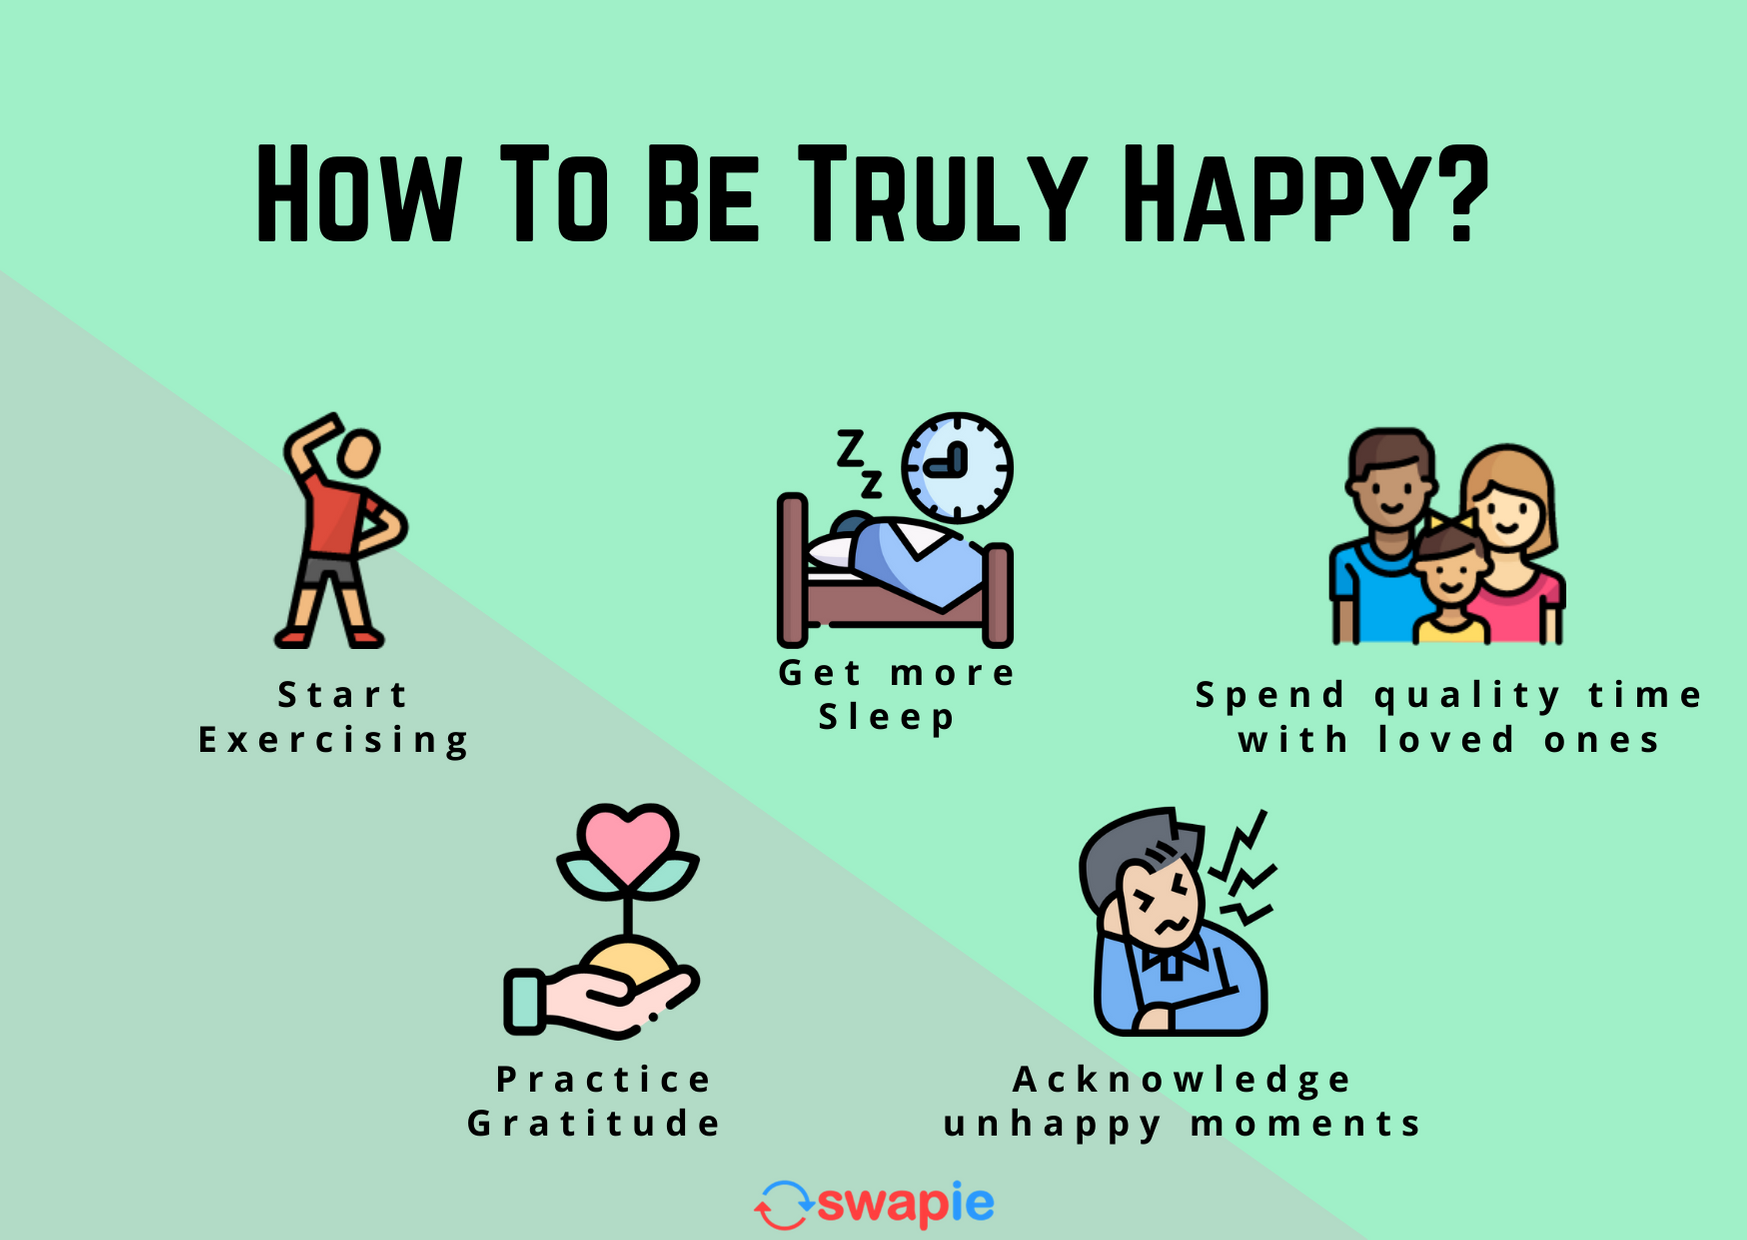 How to be truly happy?